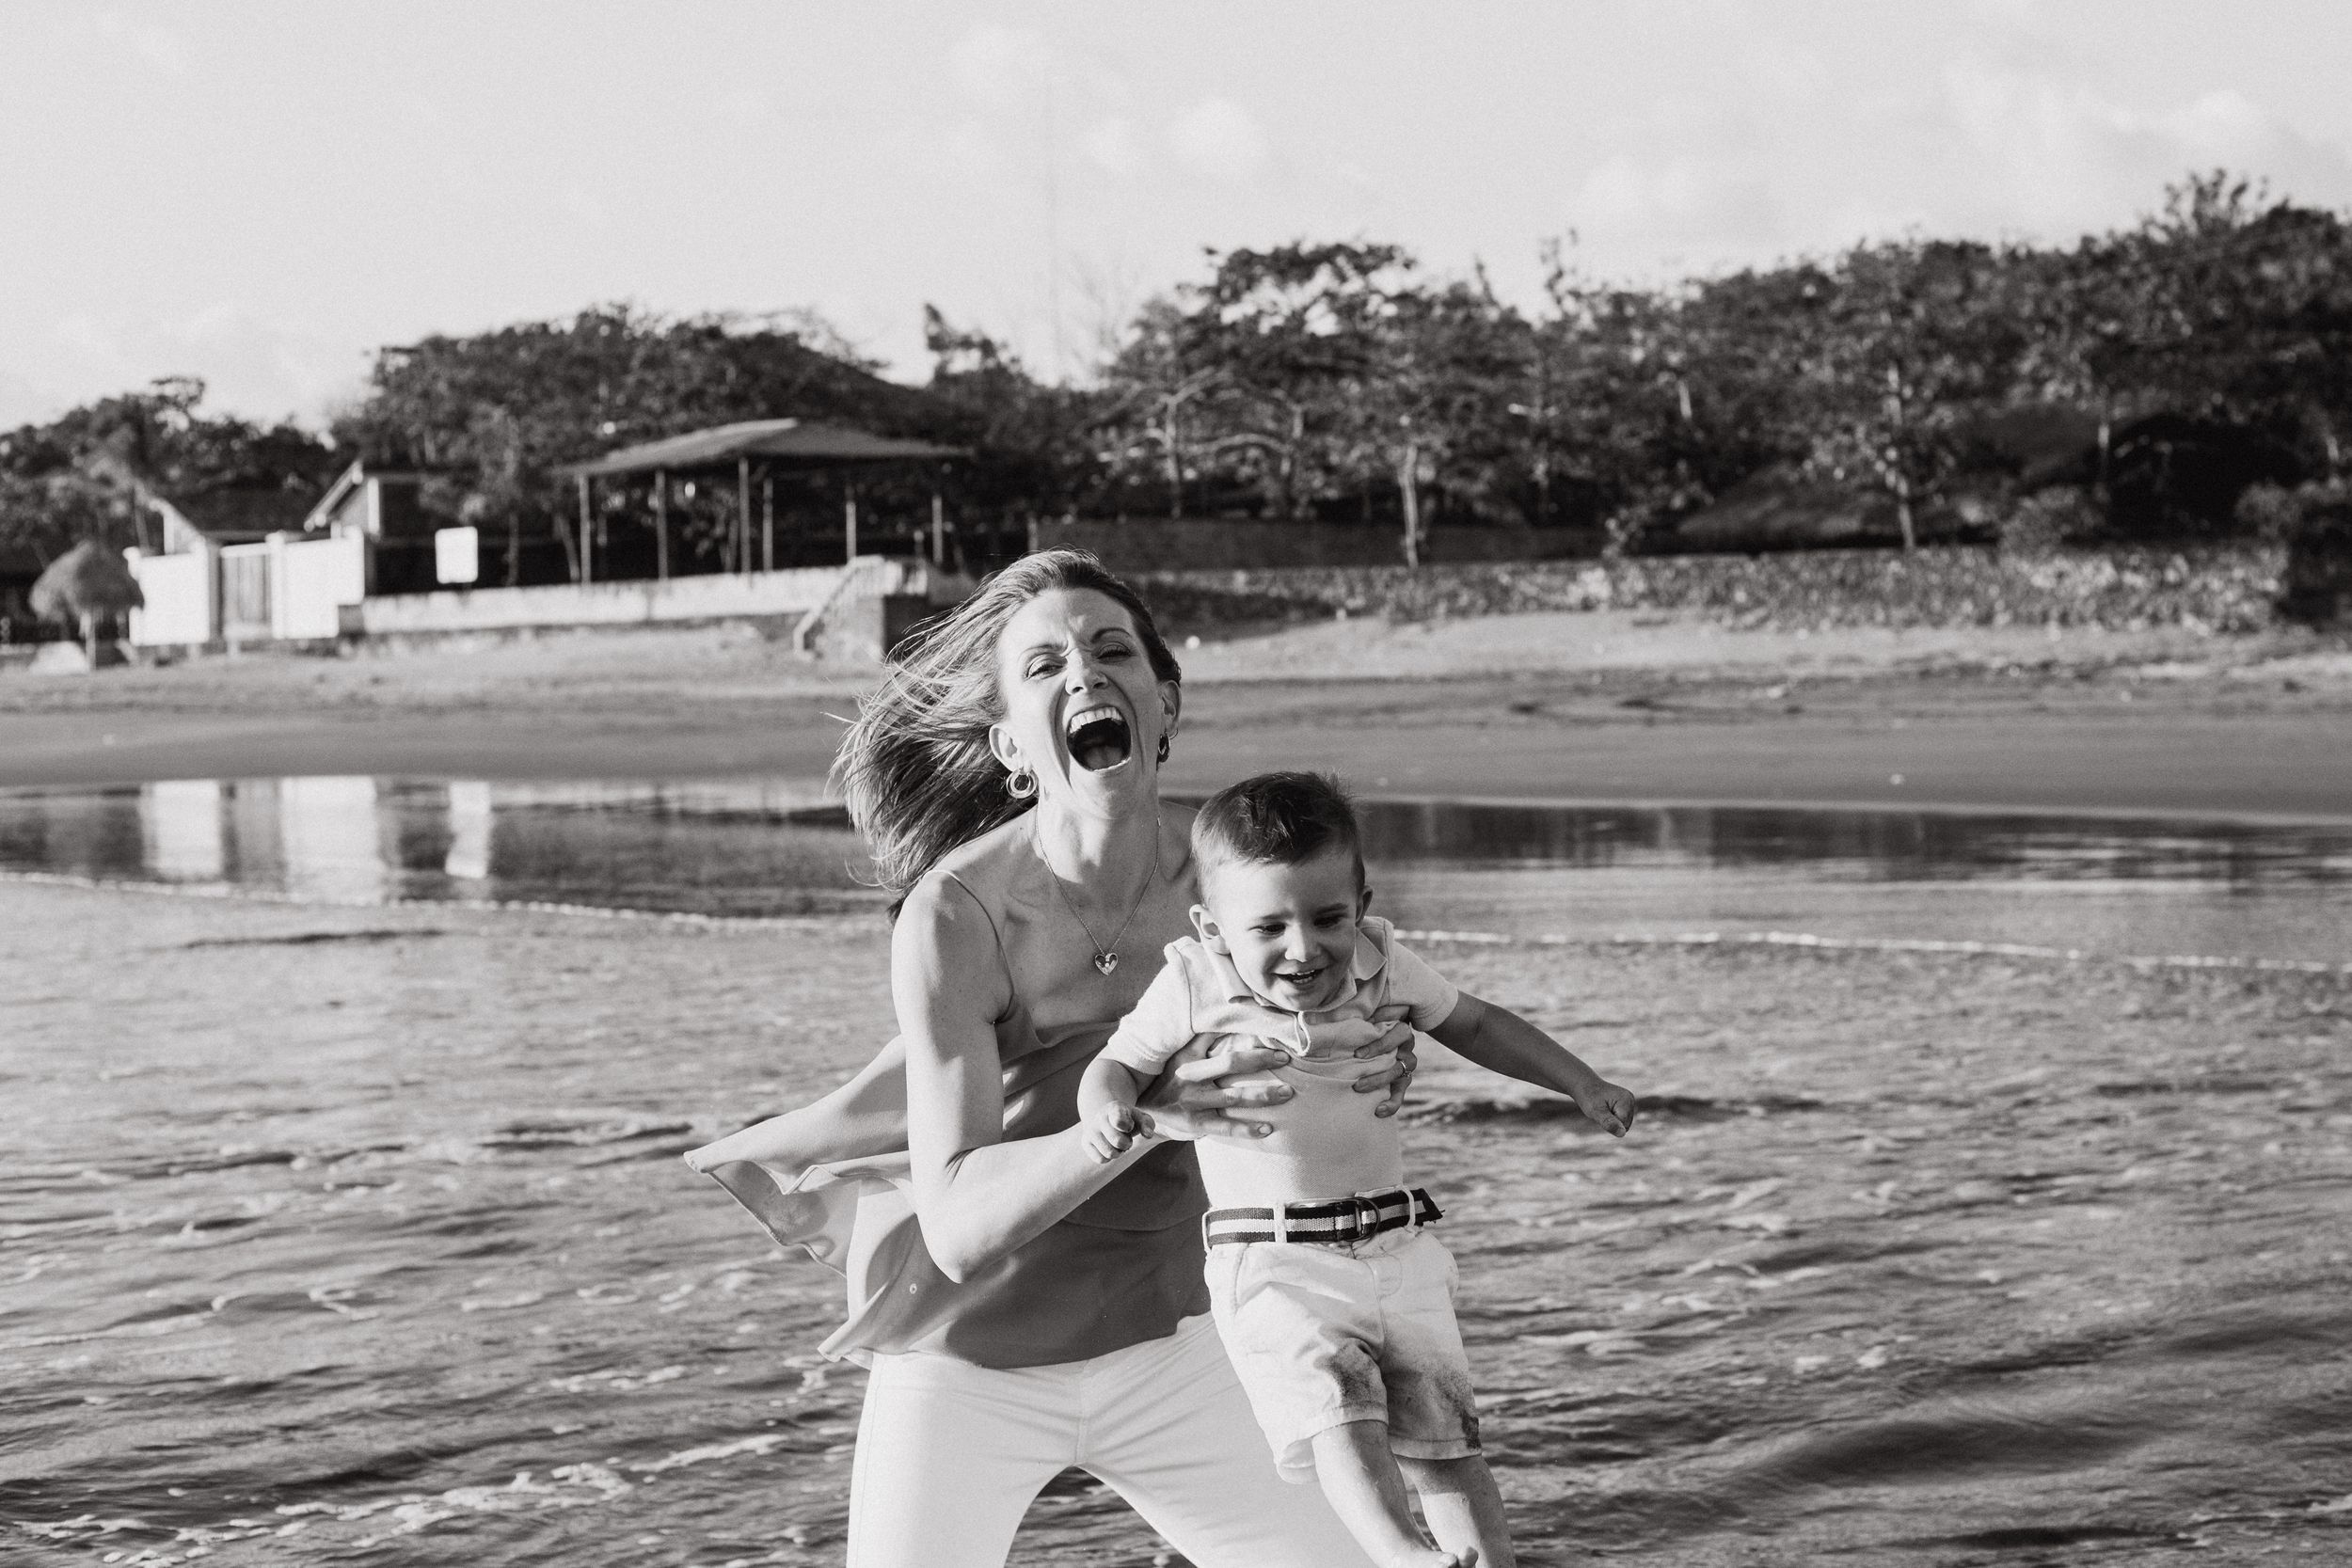 Mom and son play and laugh on a Nicaragua beach